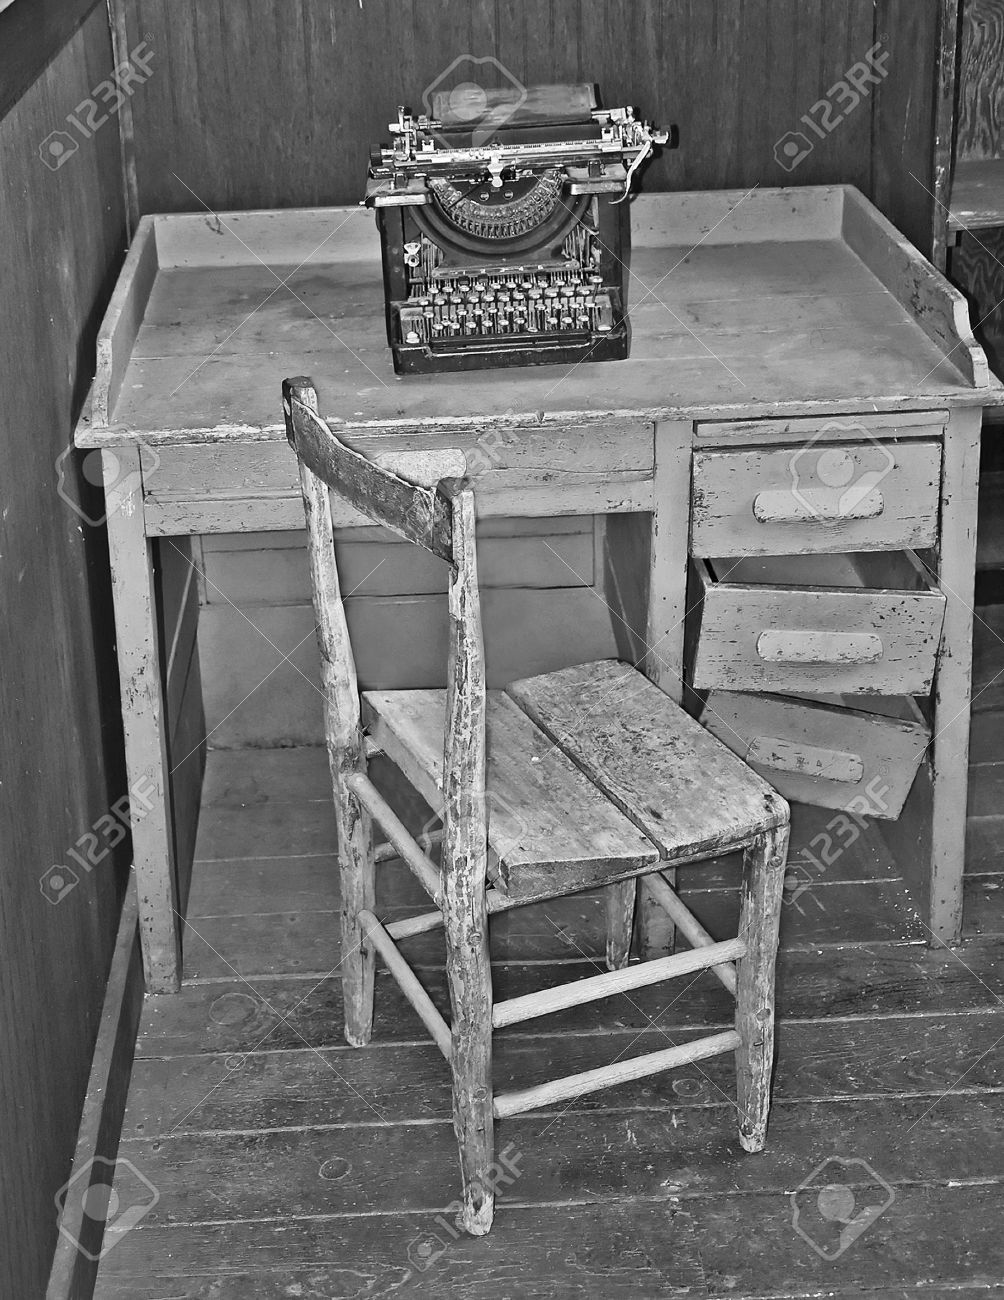 Hot desking lands ato in compensation case - Admirable This Black And White Vintage Image Is An Old Broken Down Desk Free Home Designs